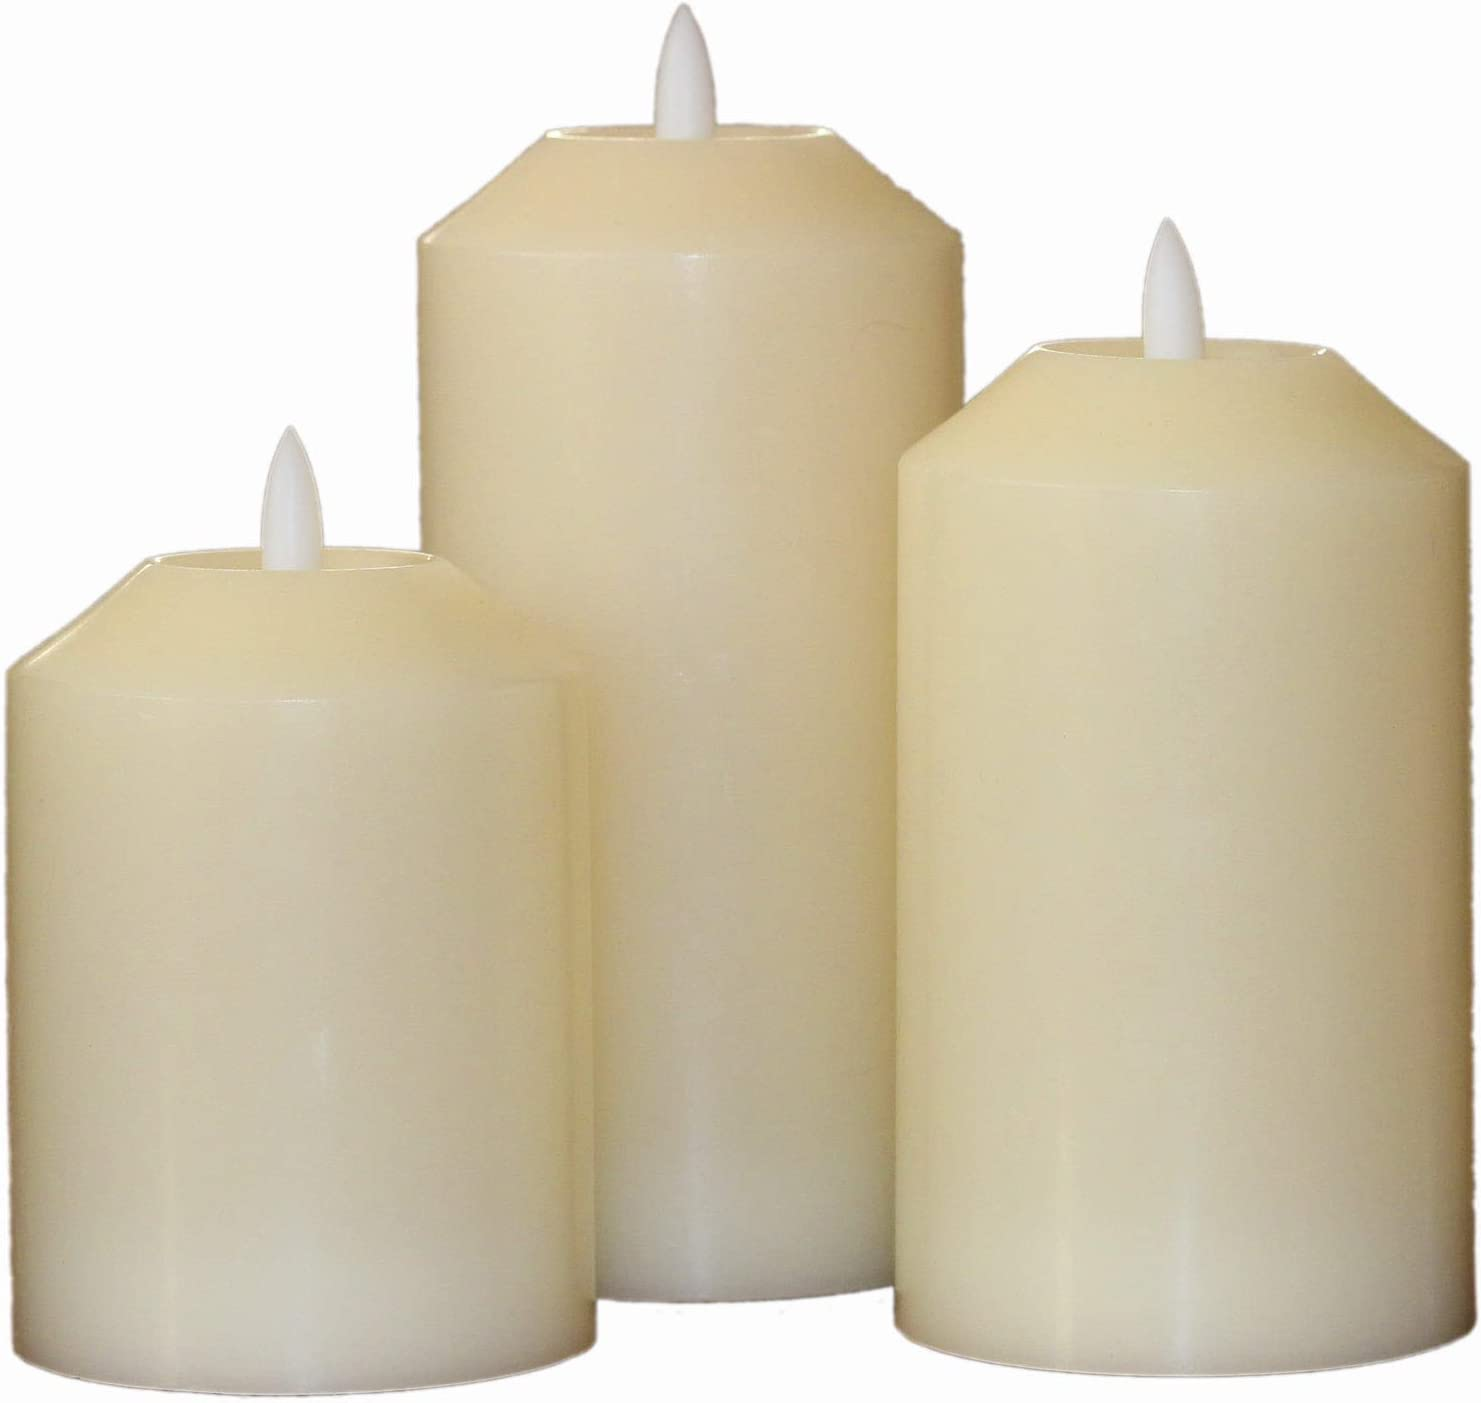 Vanilla Scented Flameless Candles with Timer (8 Hour). Set of 3 White Wax Battery Operated Night Light Candles. Realistic 3D Flickering Flame. 4 5 6 inch Electric LED Pillar Candles.